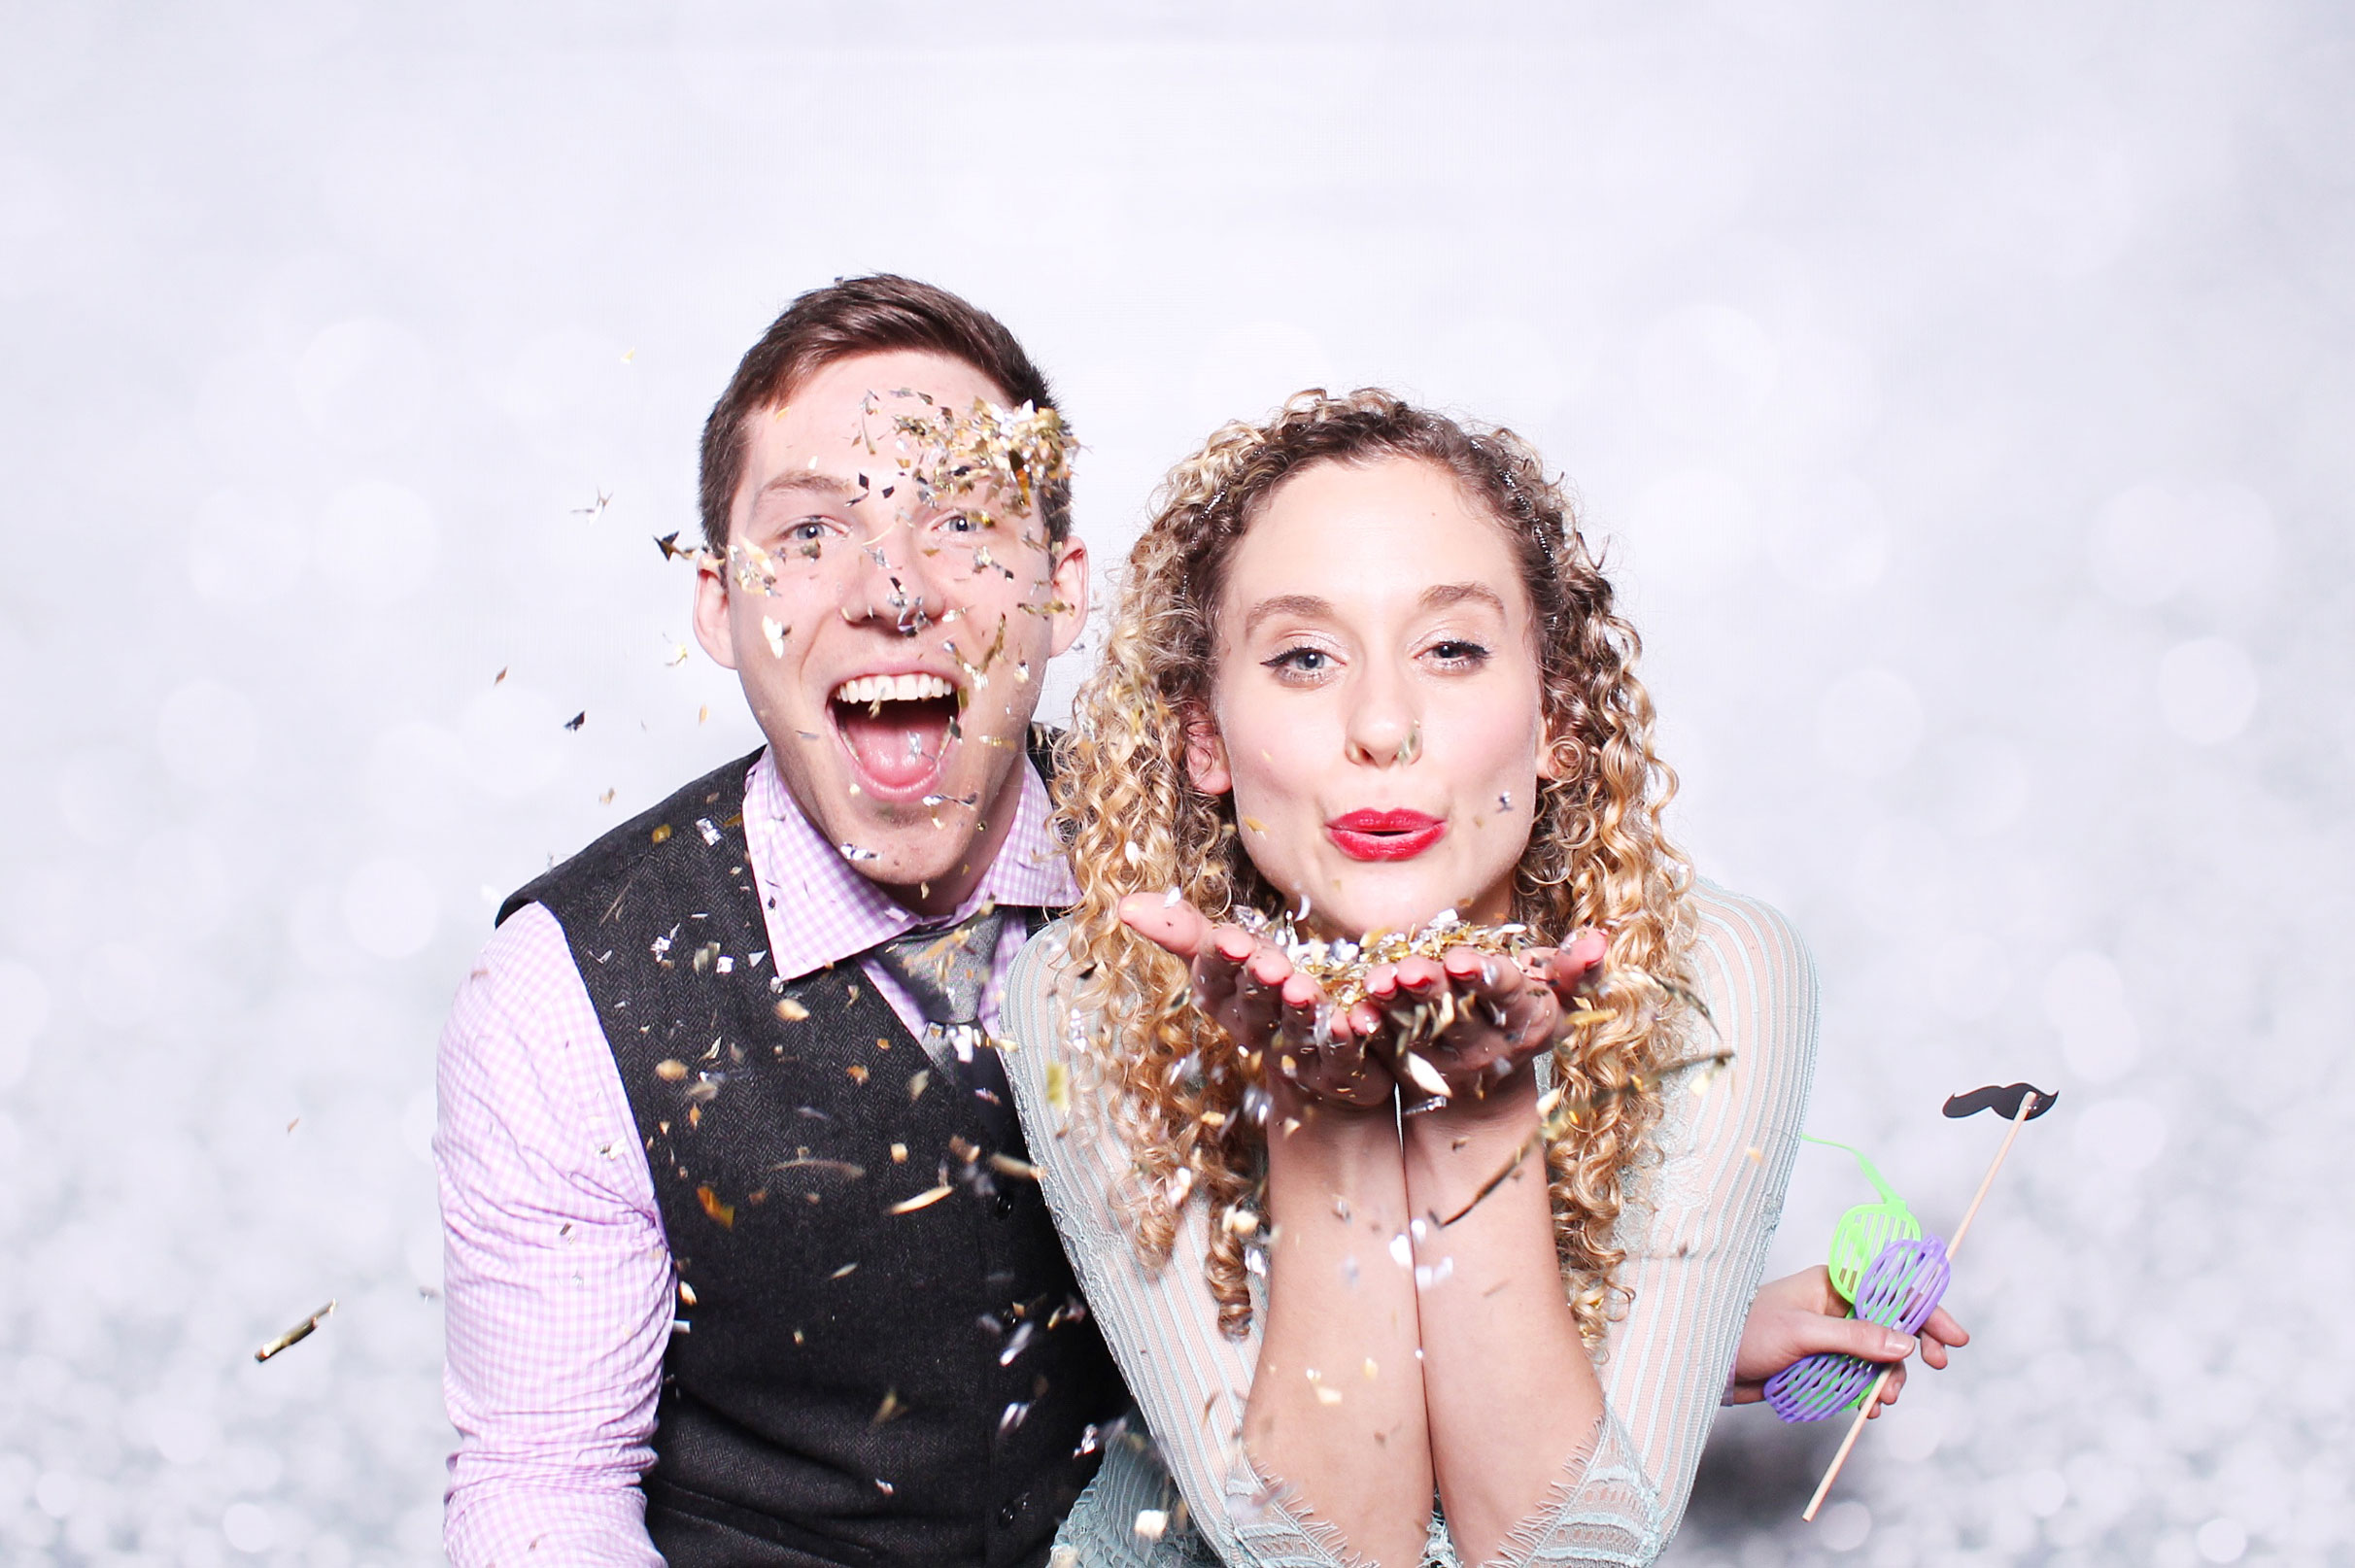 Glitter prop photo booth